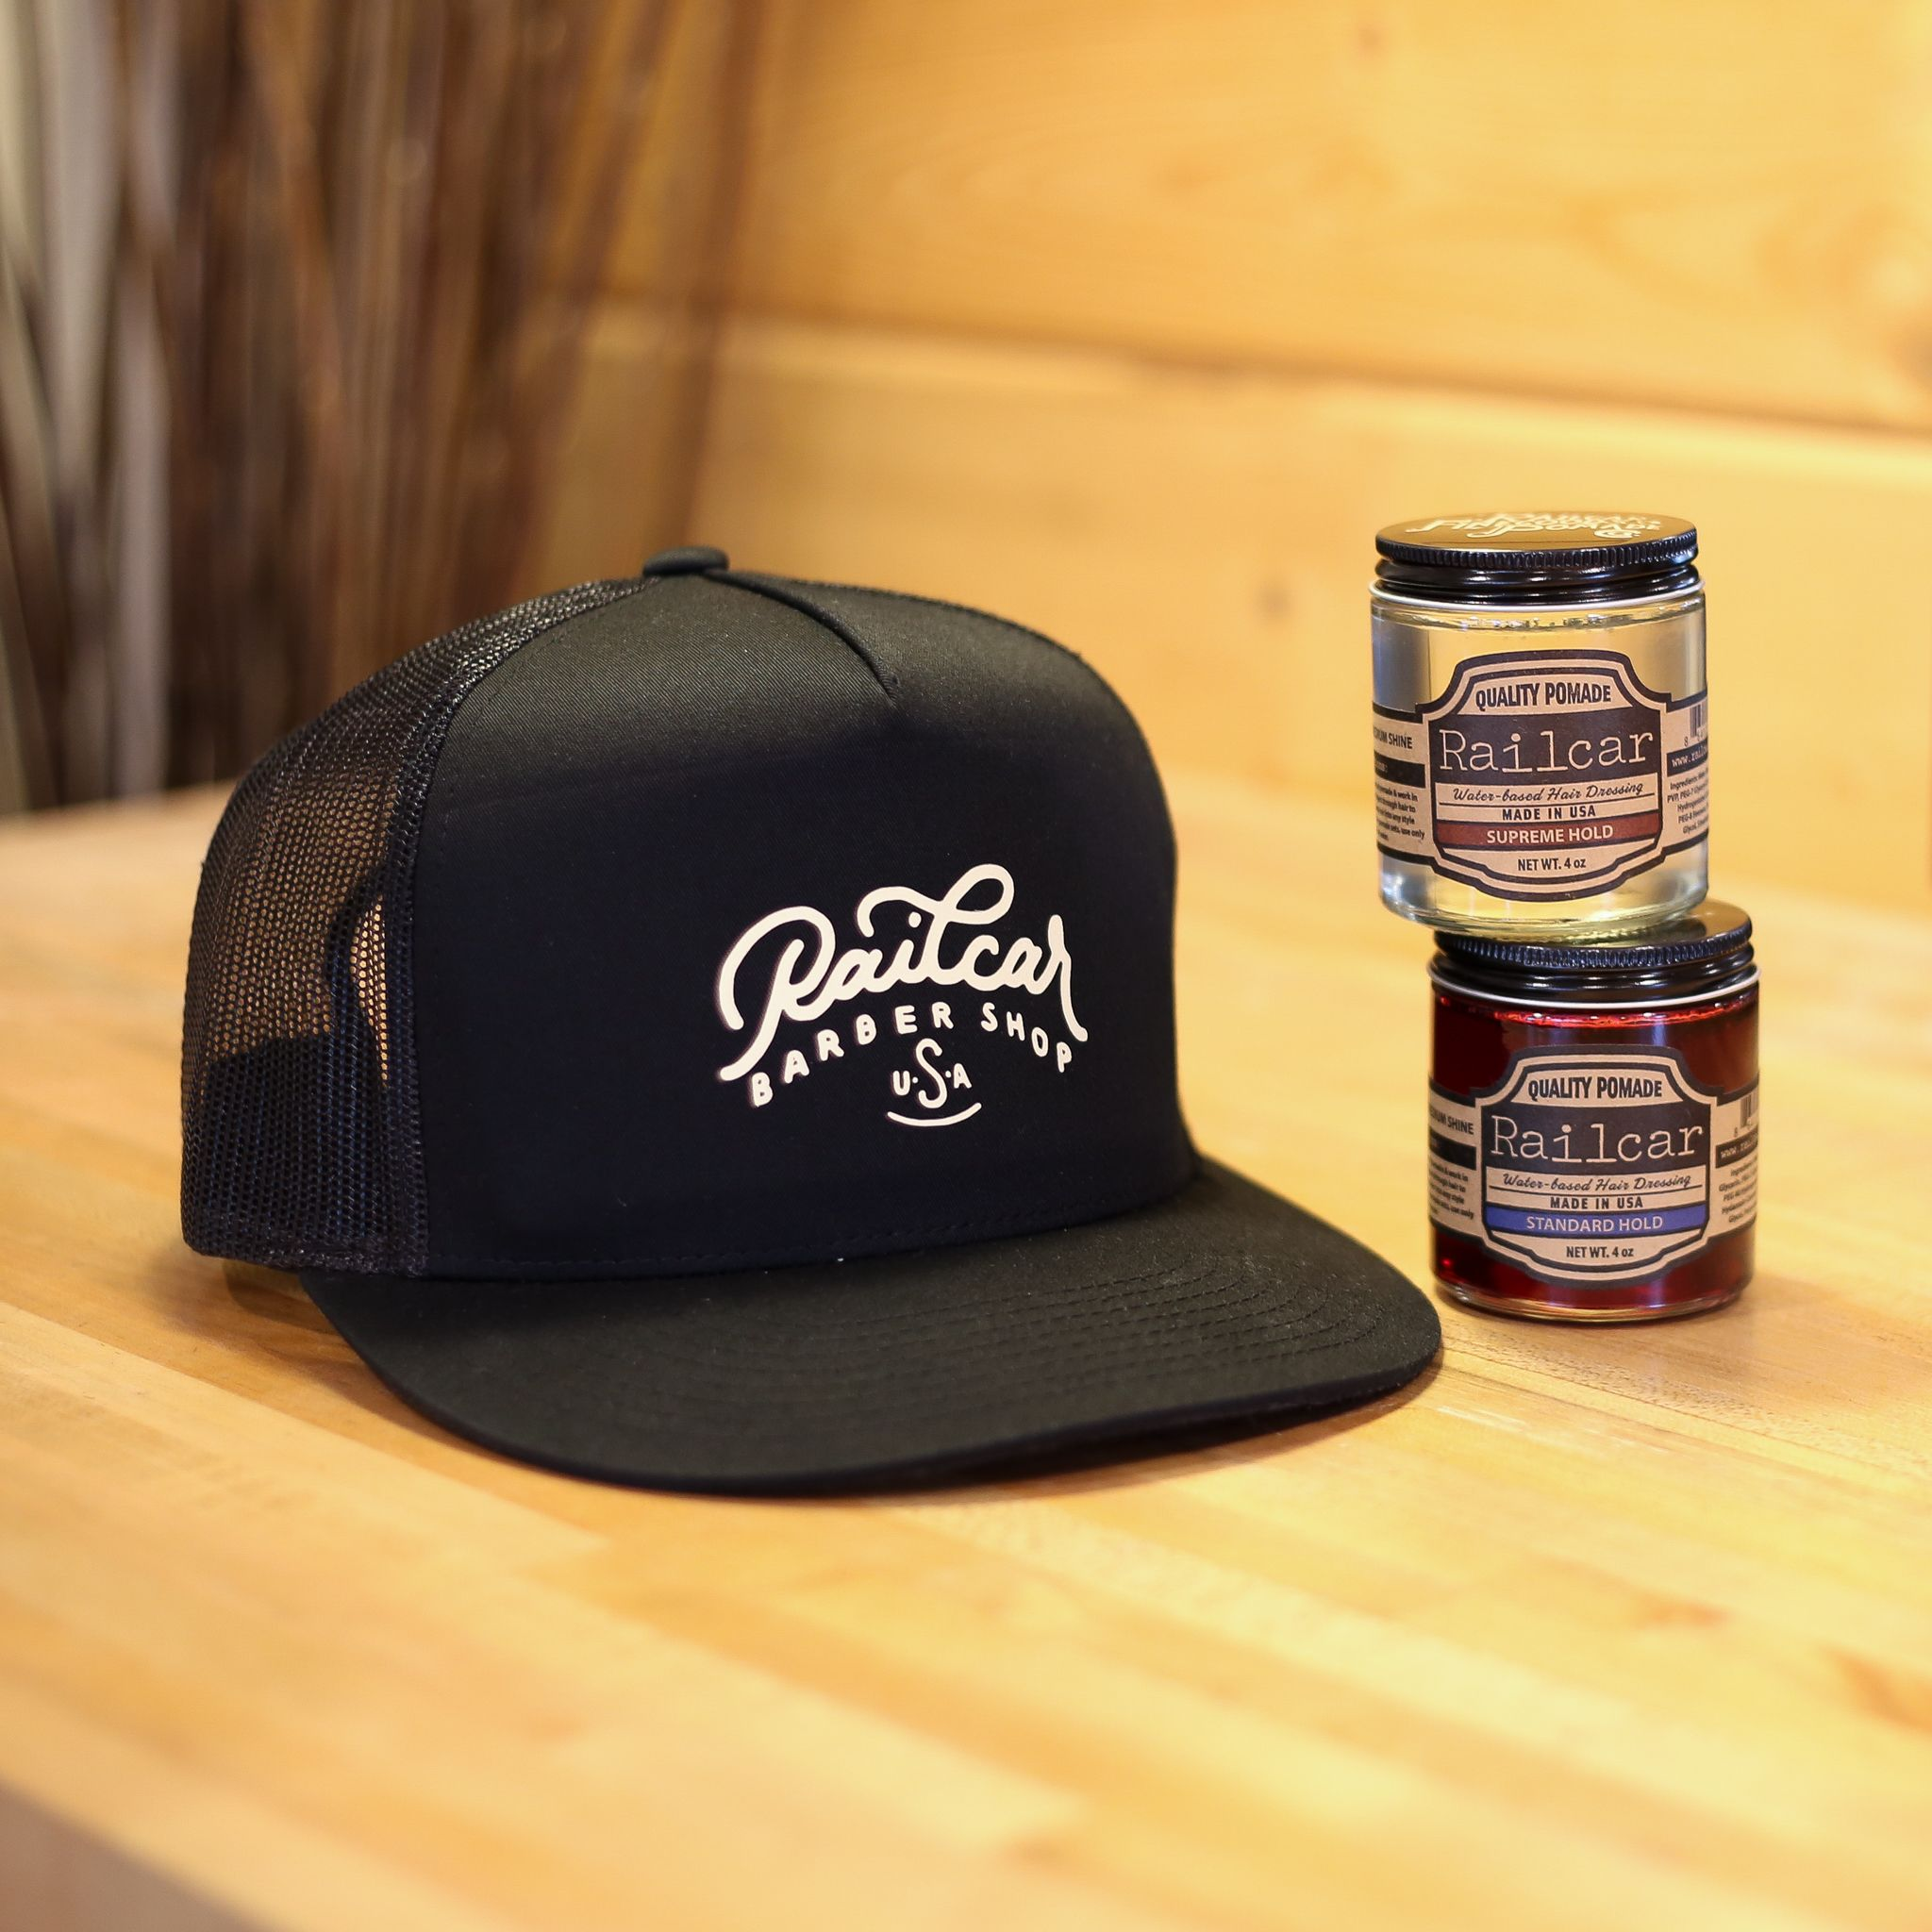 afab110579f32 NEW Railcar Barber Shop hats. All made in house at our workshop. Rep our  Barber Shop around town!